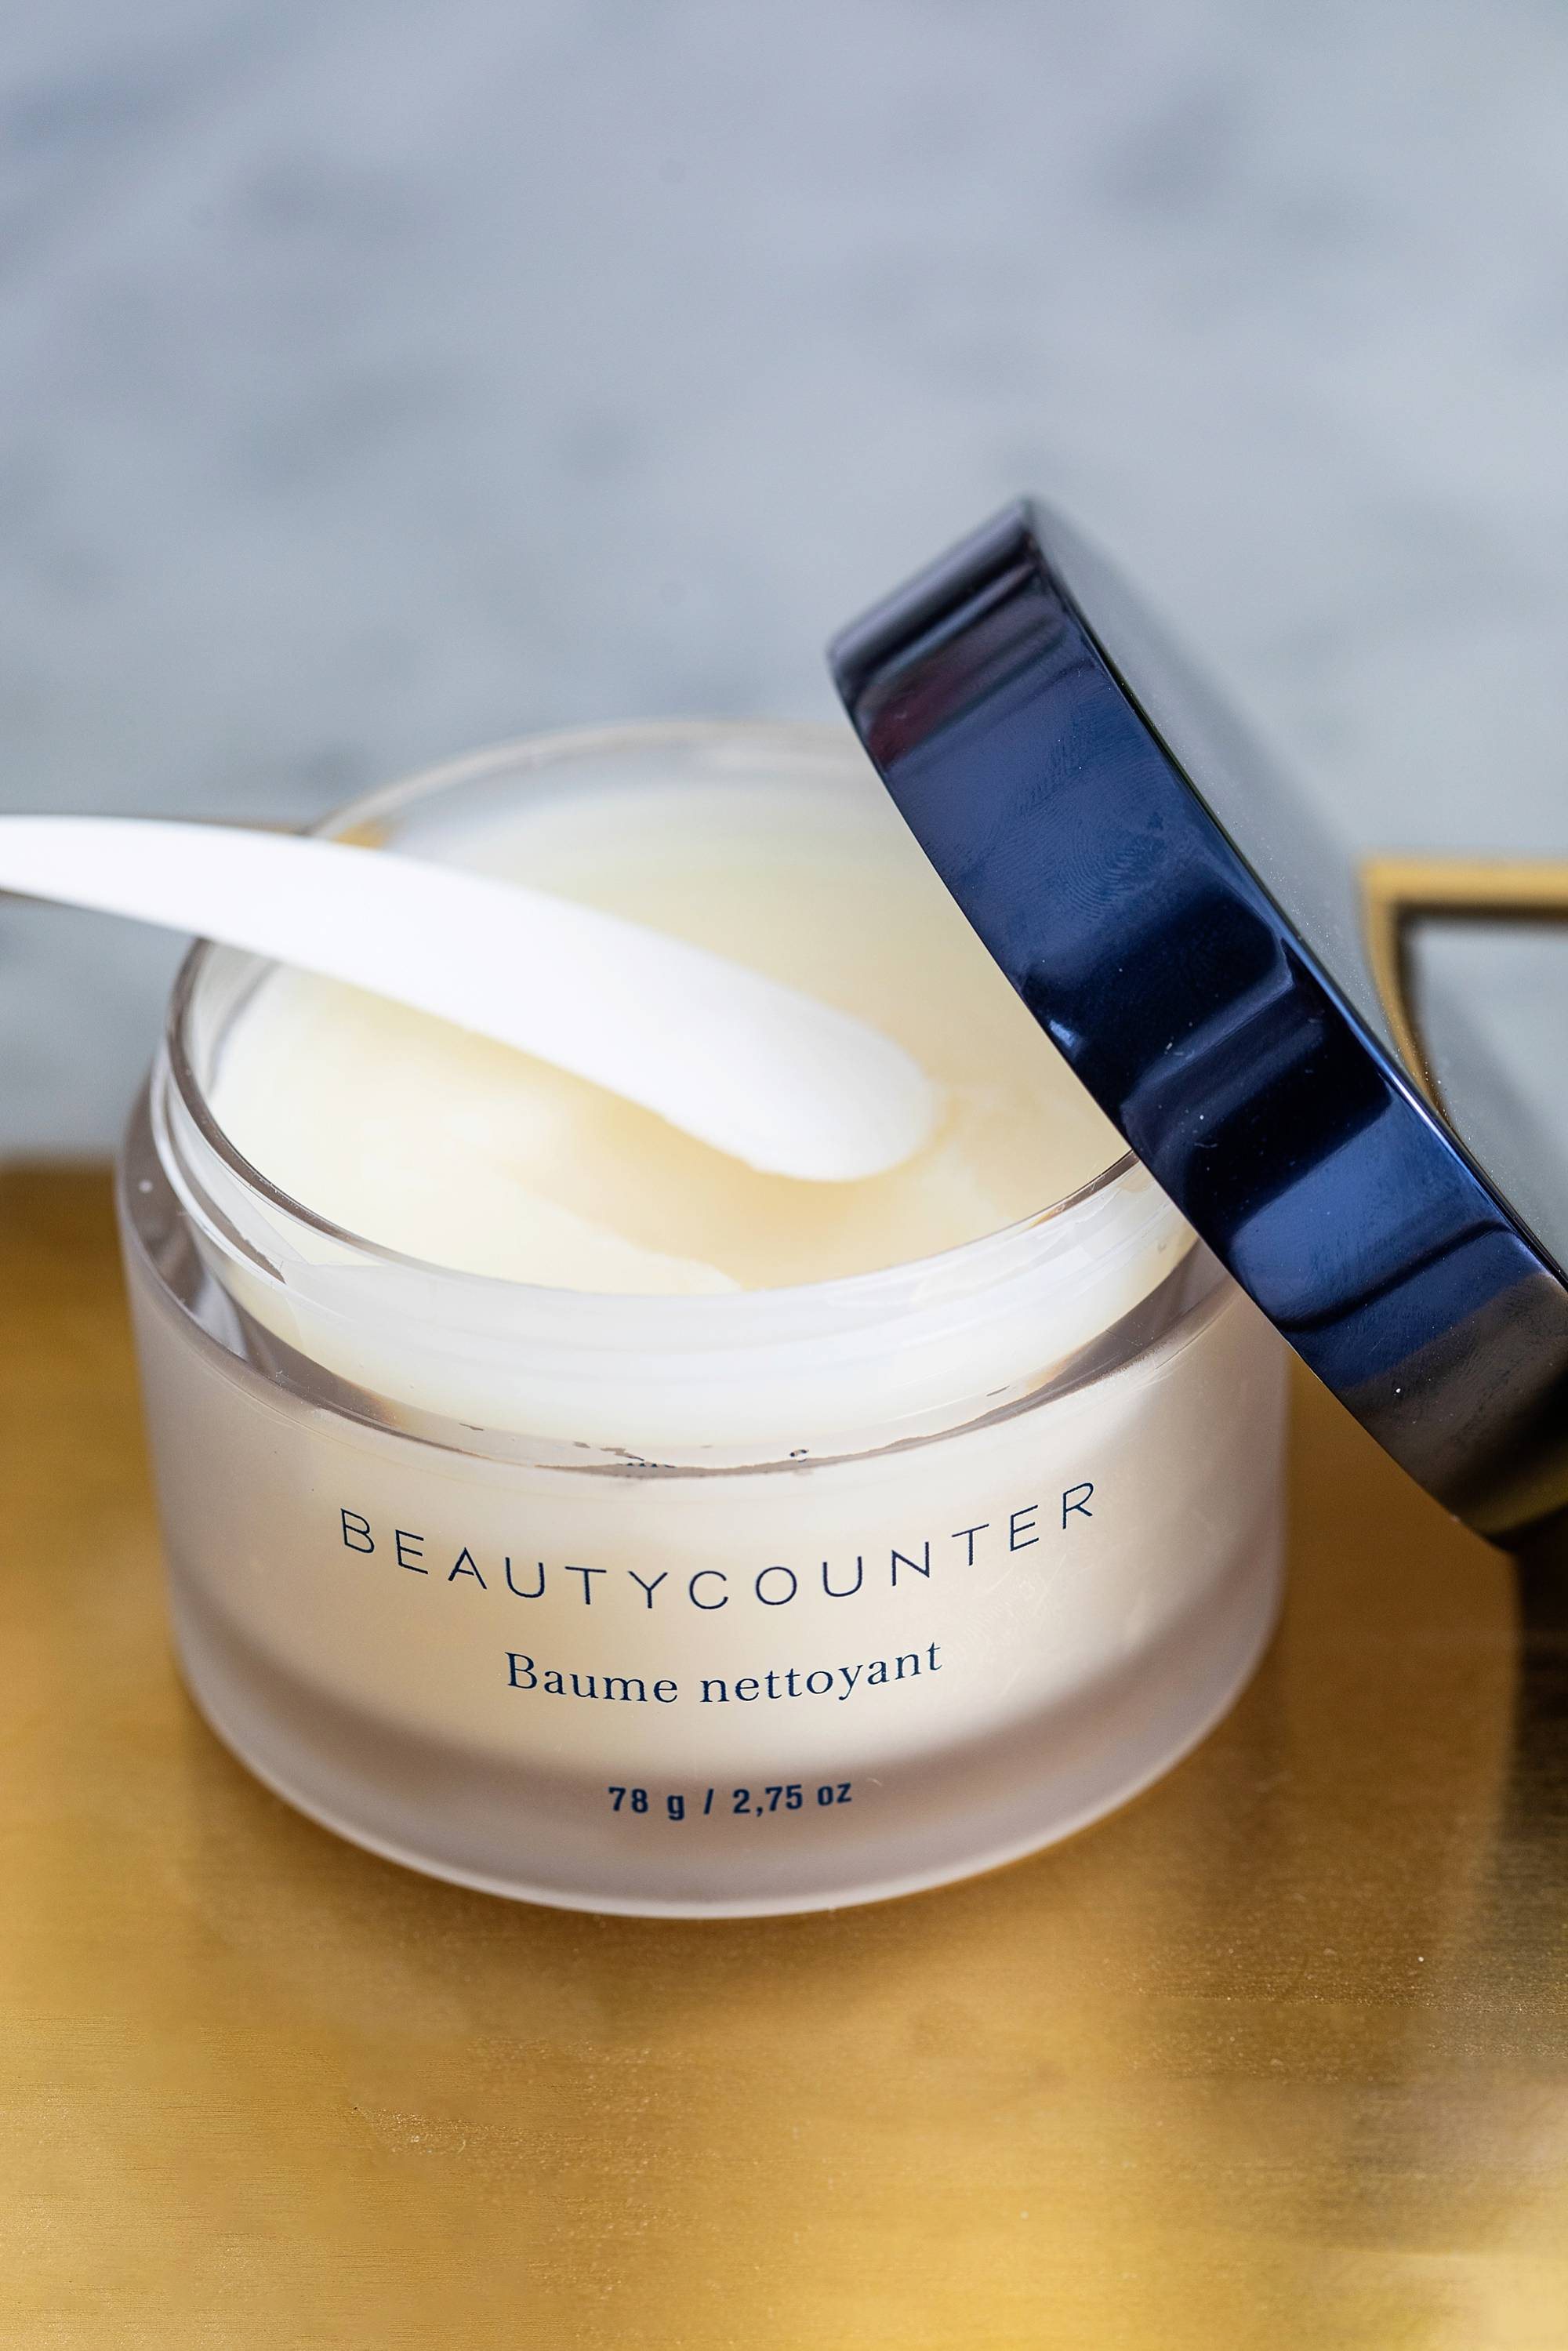 Beautycounter cleansing balm and facial oil